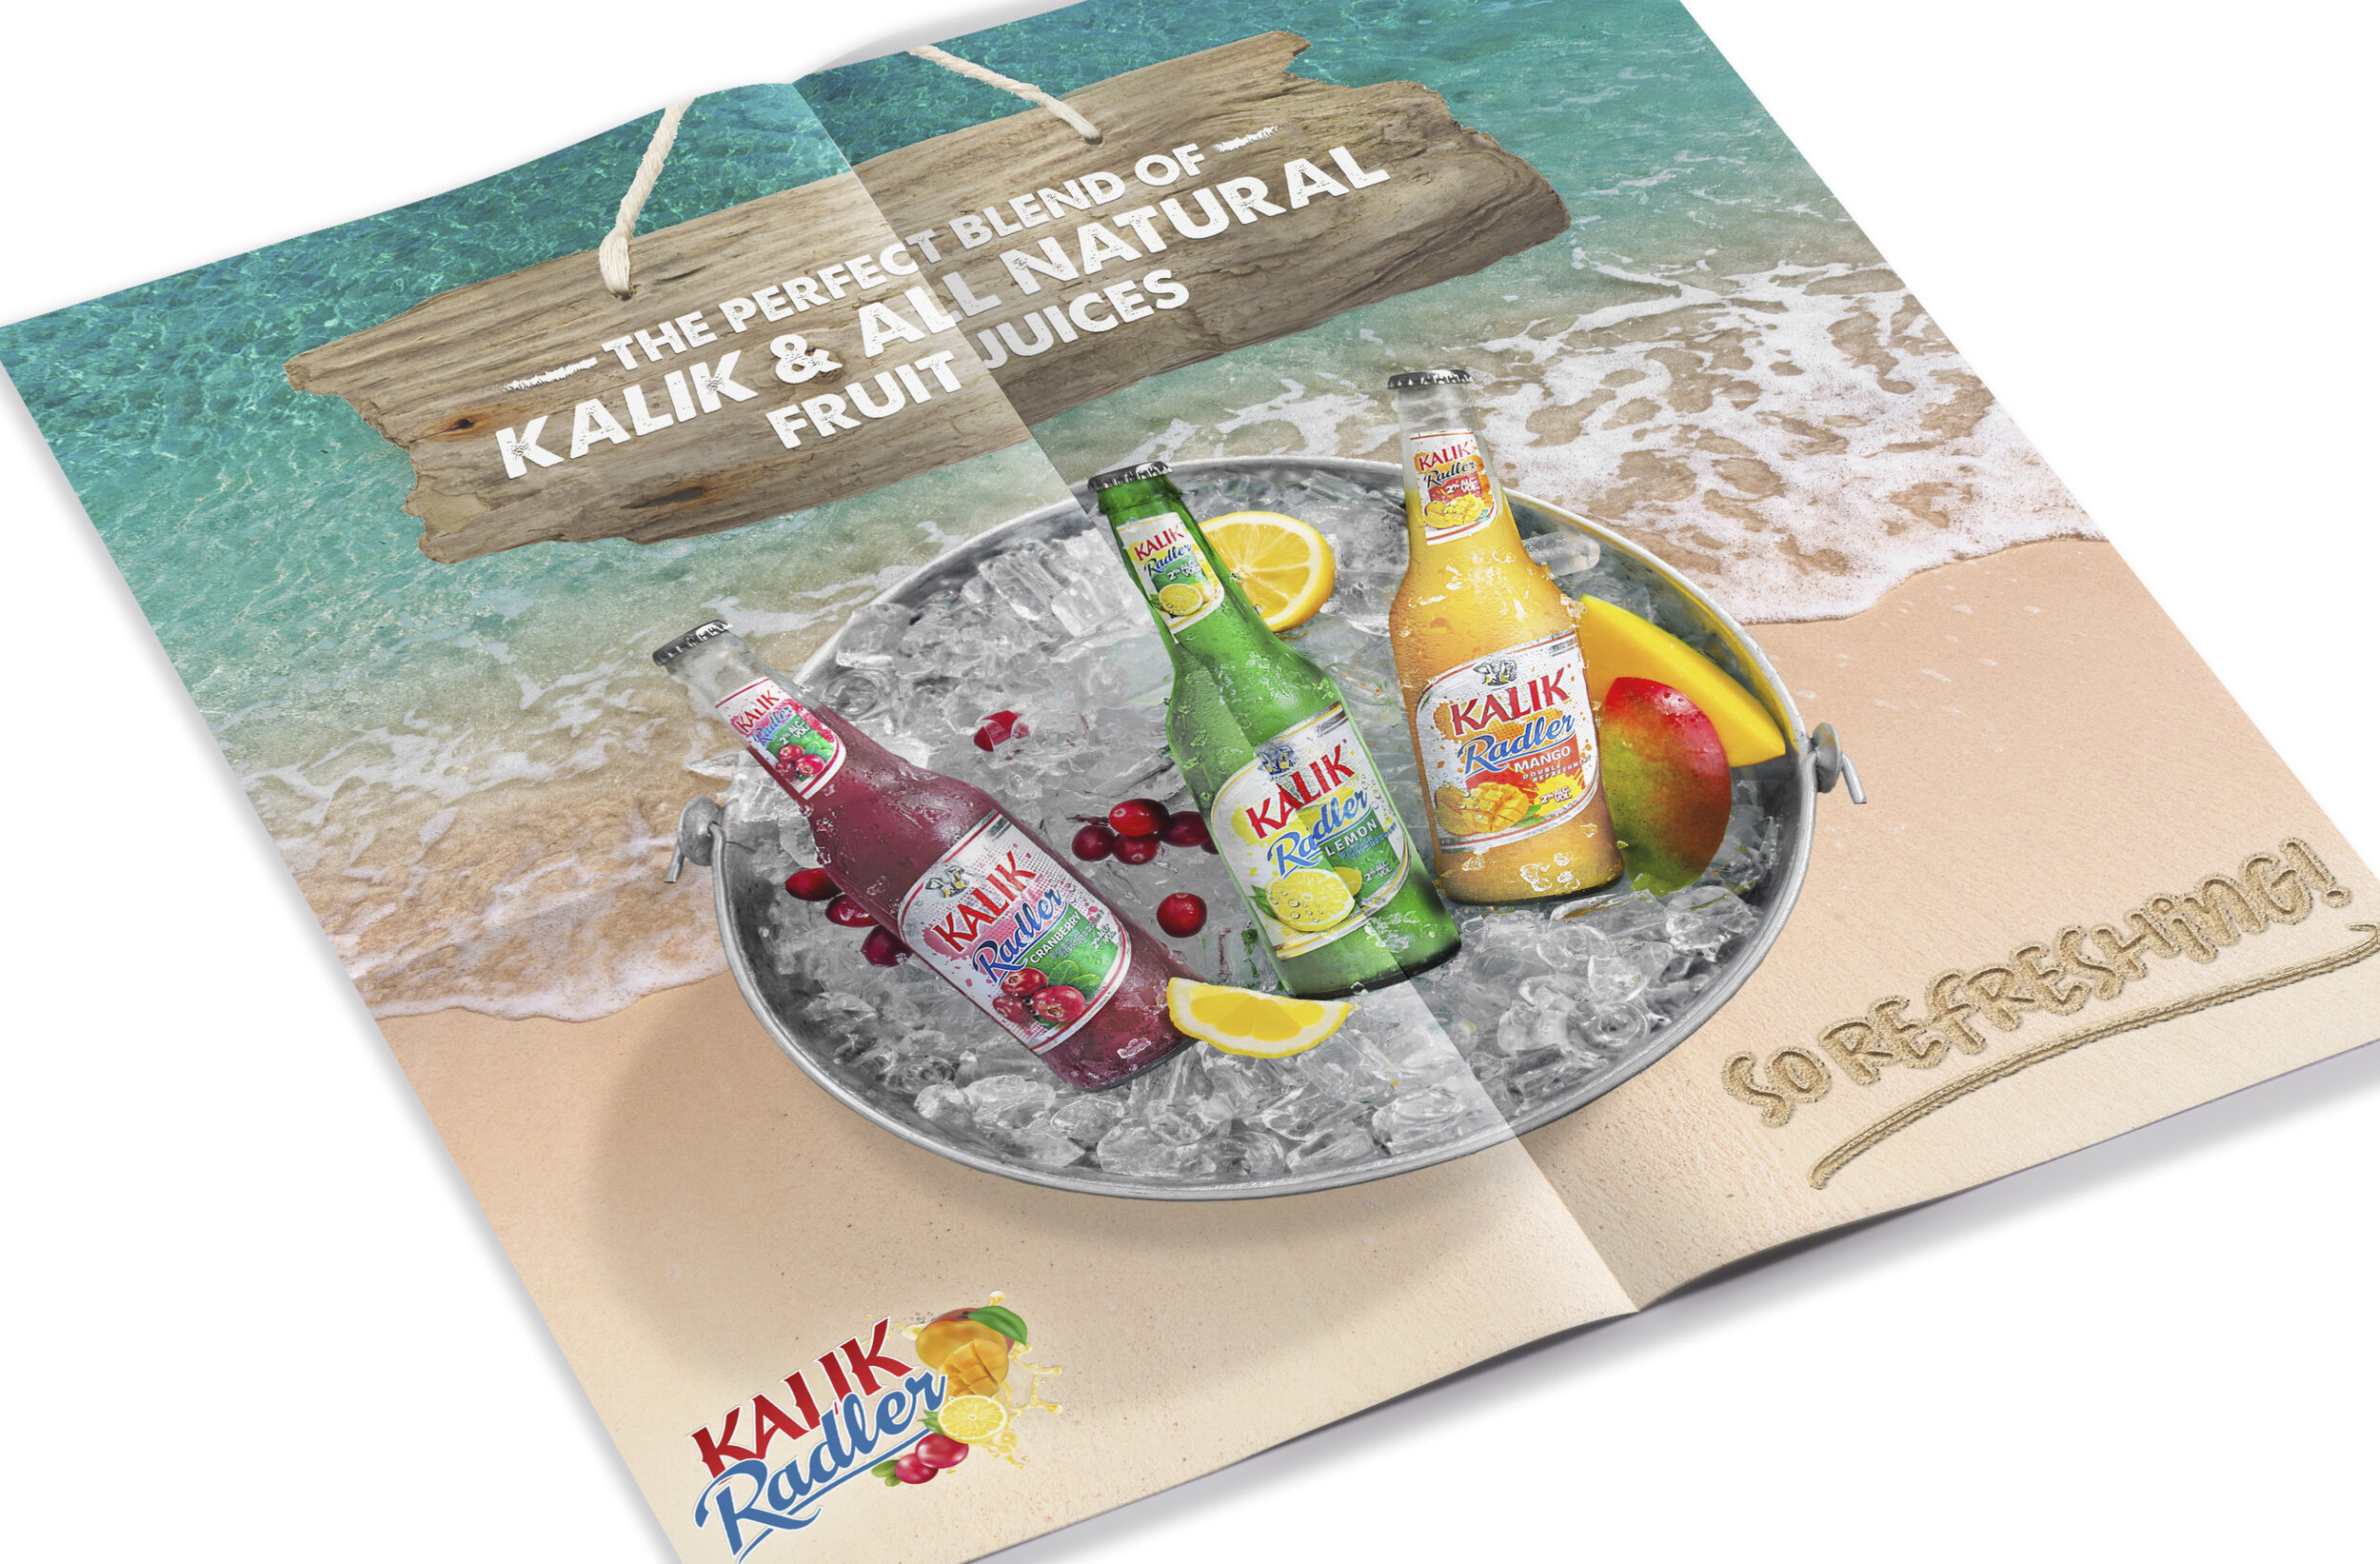 Kalik_Radler_Newspaper_Wrap_Blue_Orchid.jpg